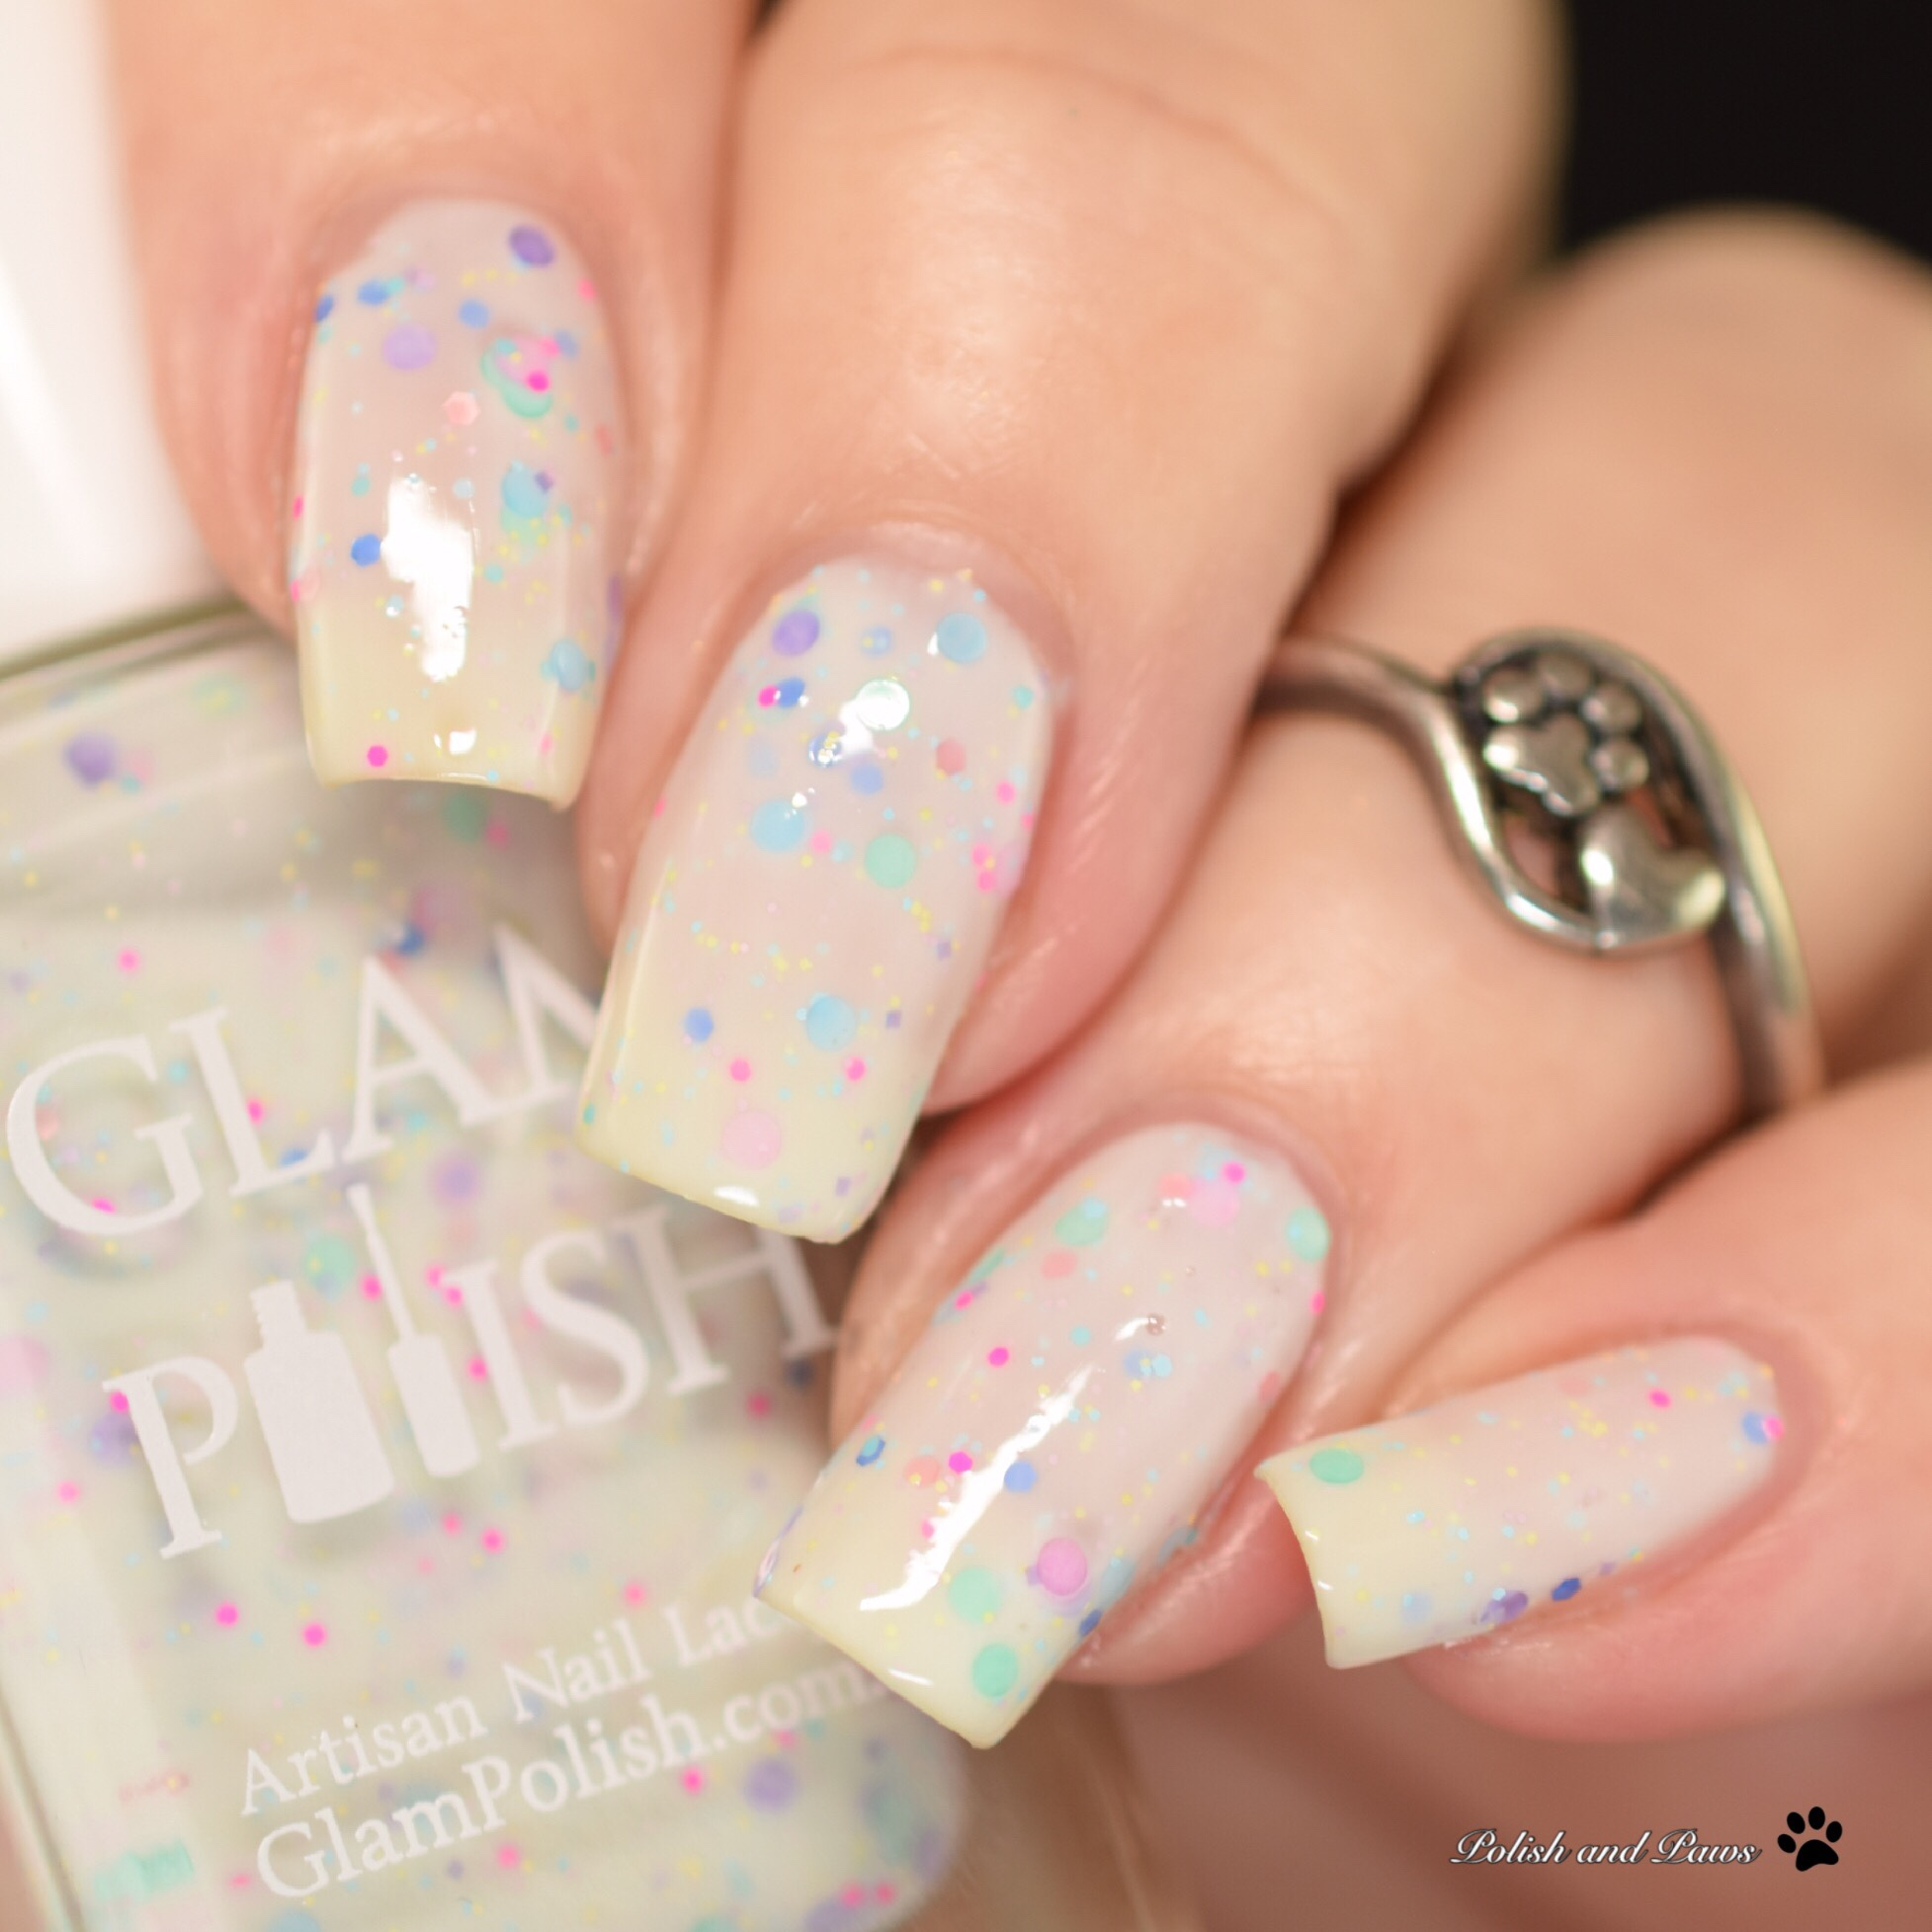 Glam Polish She Looks Like a Little Piece of Cake